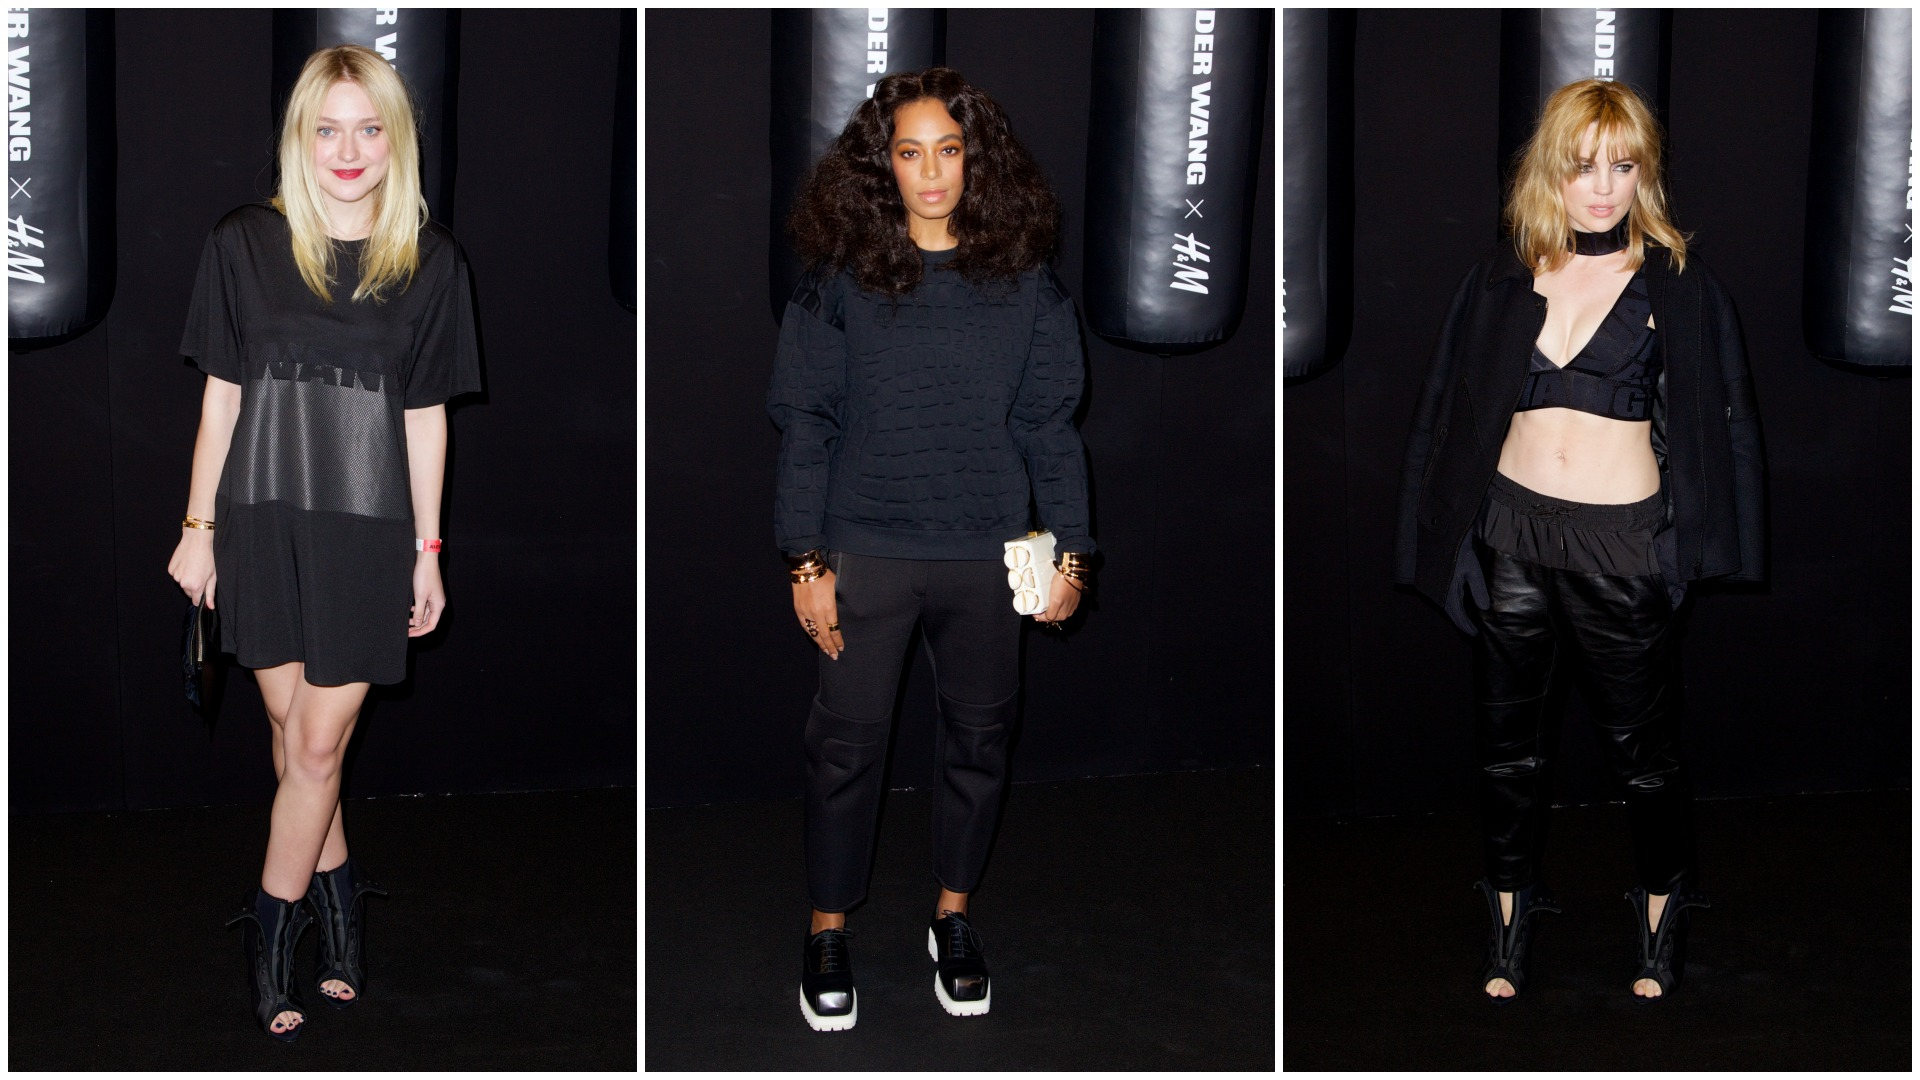 Dakota Fanning Melissa George and Solange Knowles at the Alexander Wang for H&M launch